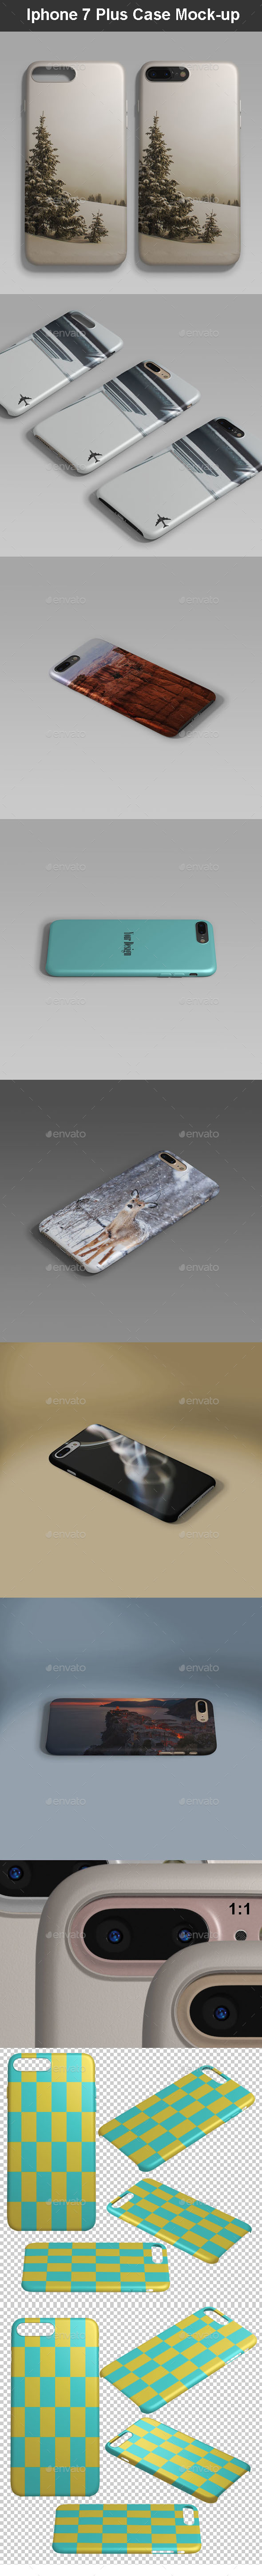 Phone 7 Plus Case Mock-up - Mobile Displays